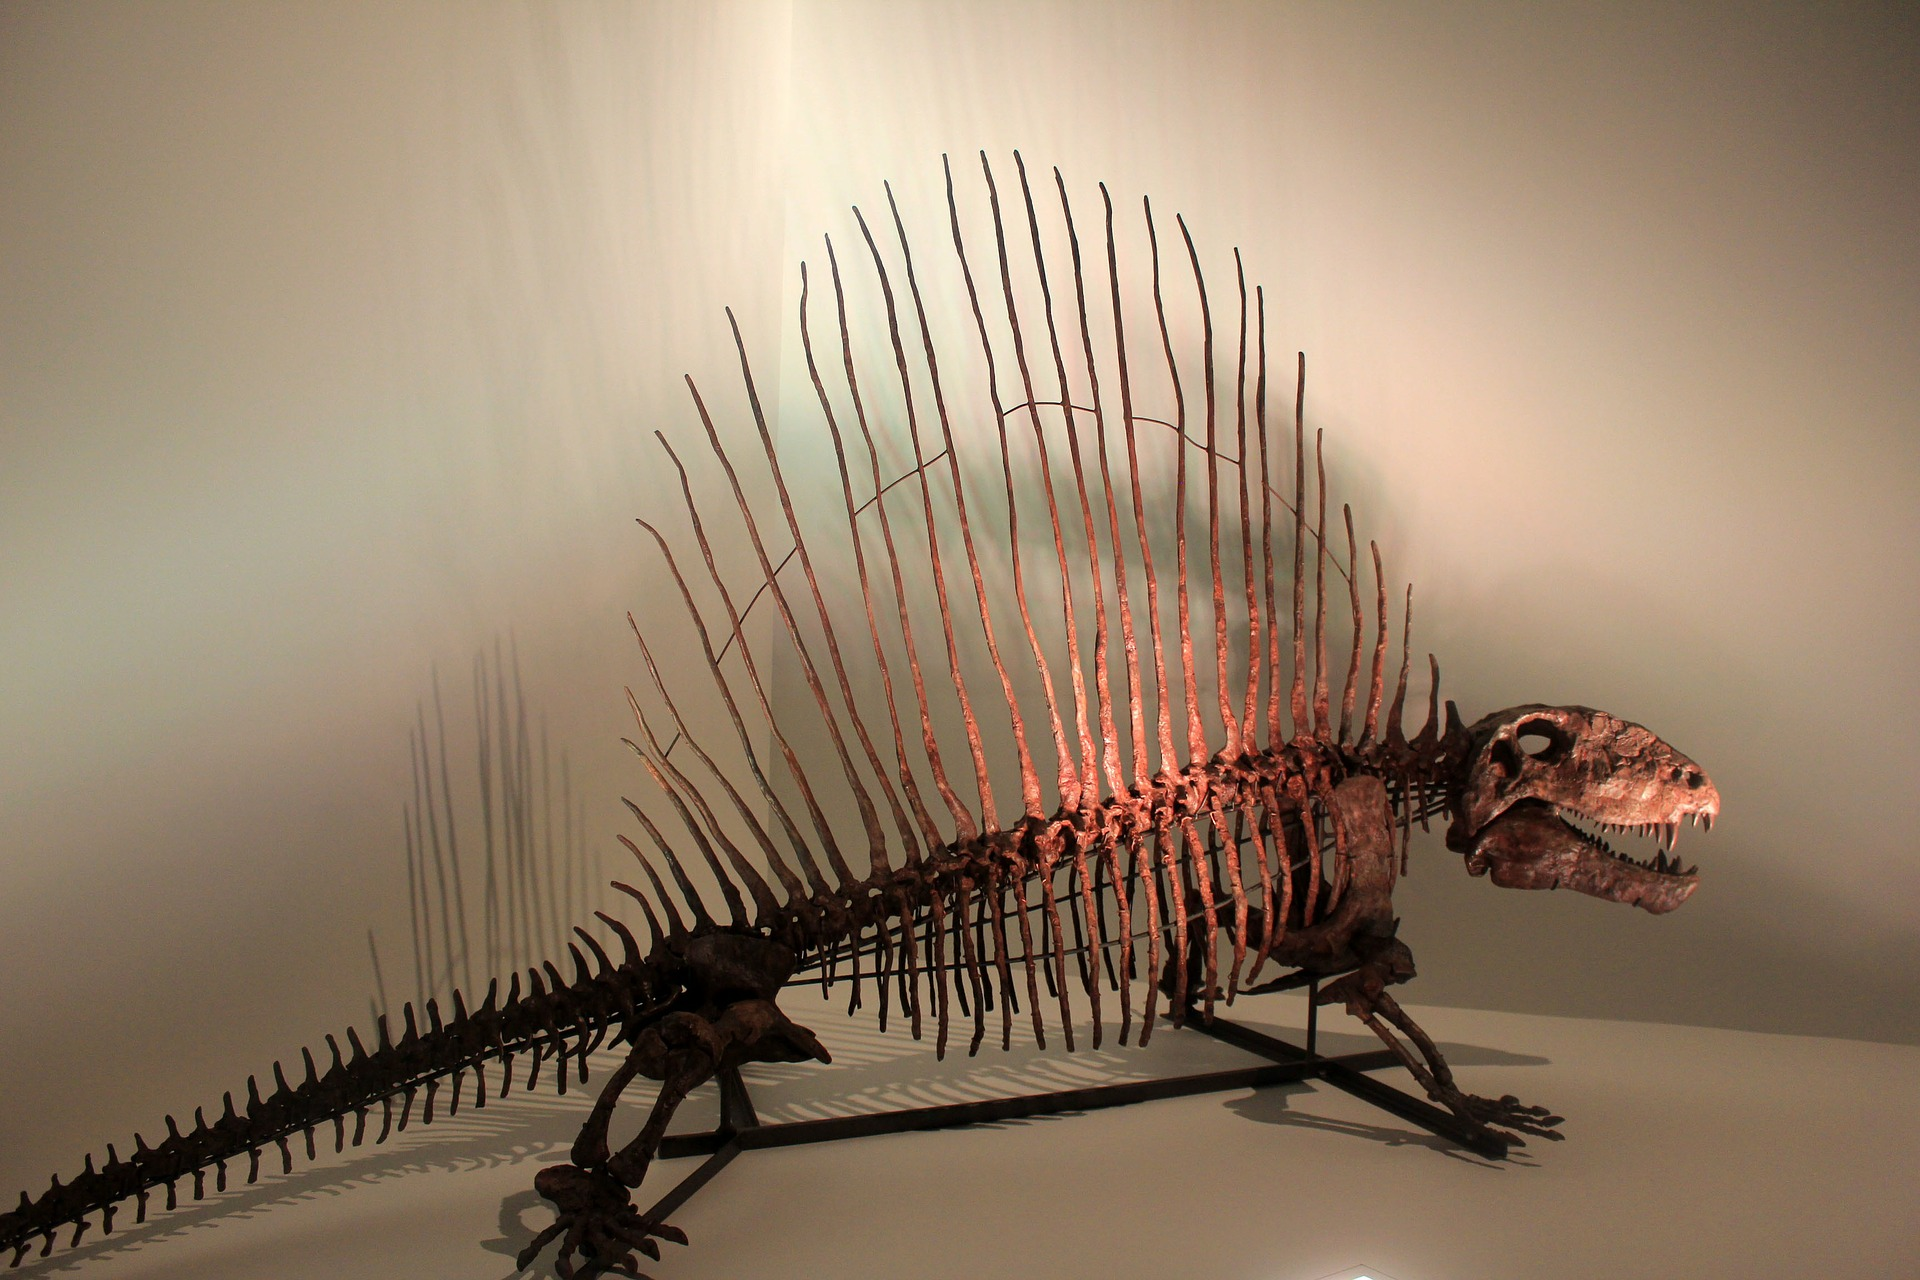 Dimetrodon skeleton. Image via Yinan Chen on Pixabay.